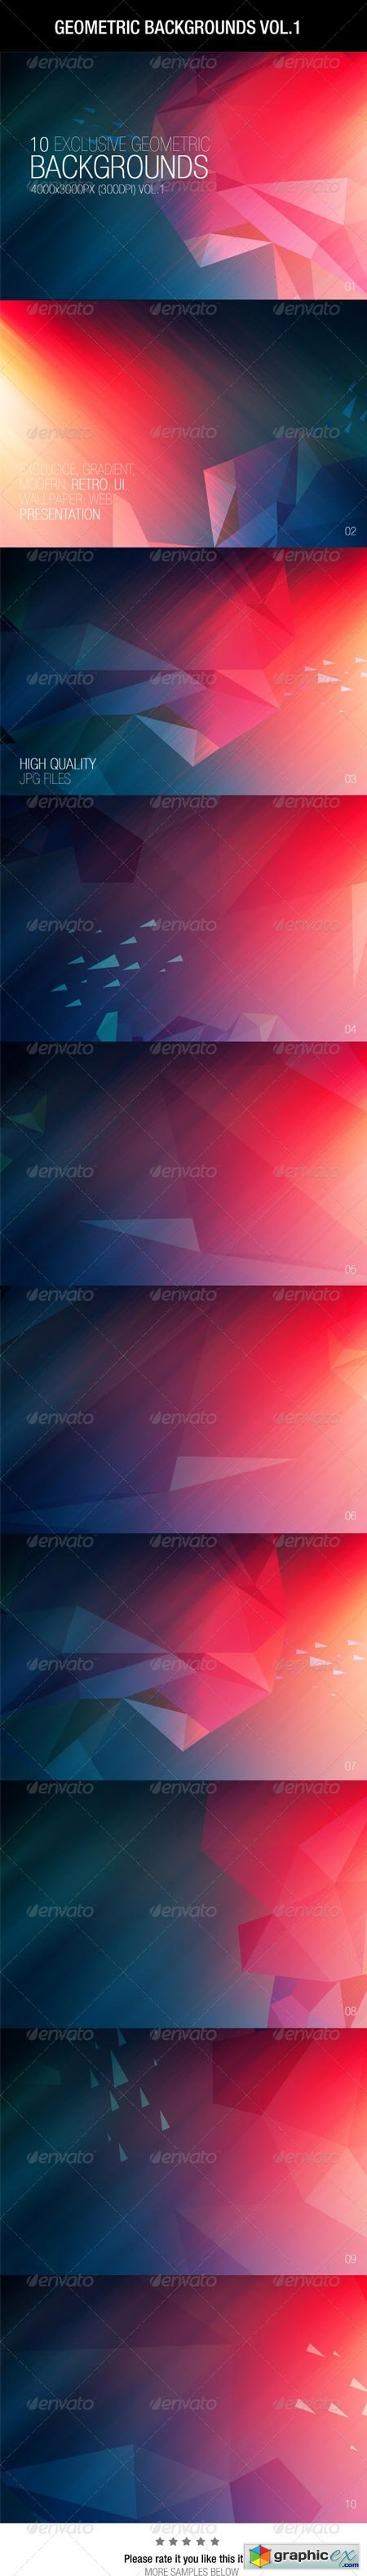 Geometric Backgrounds Vol.1 6642425